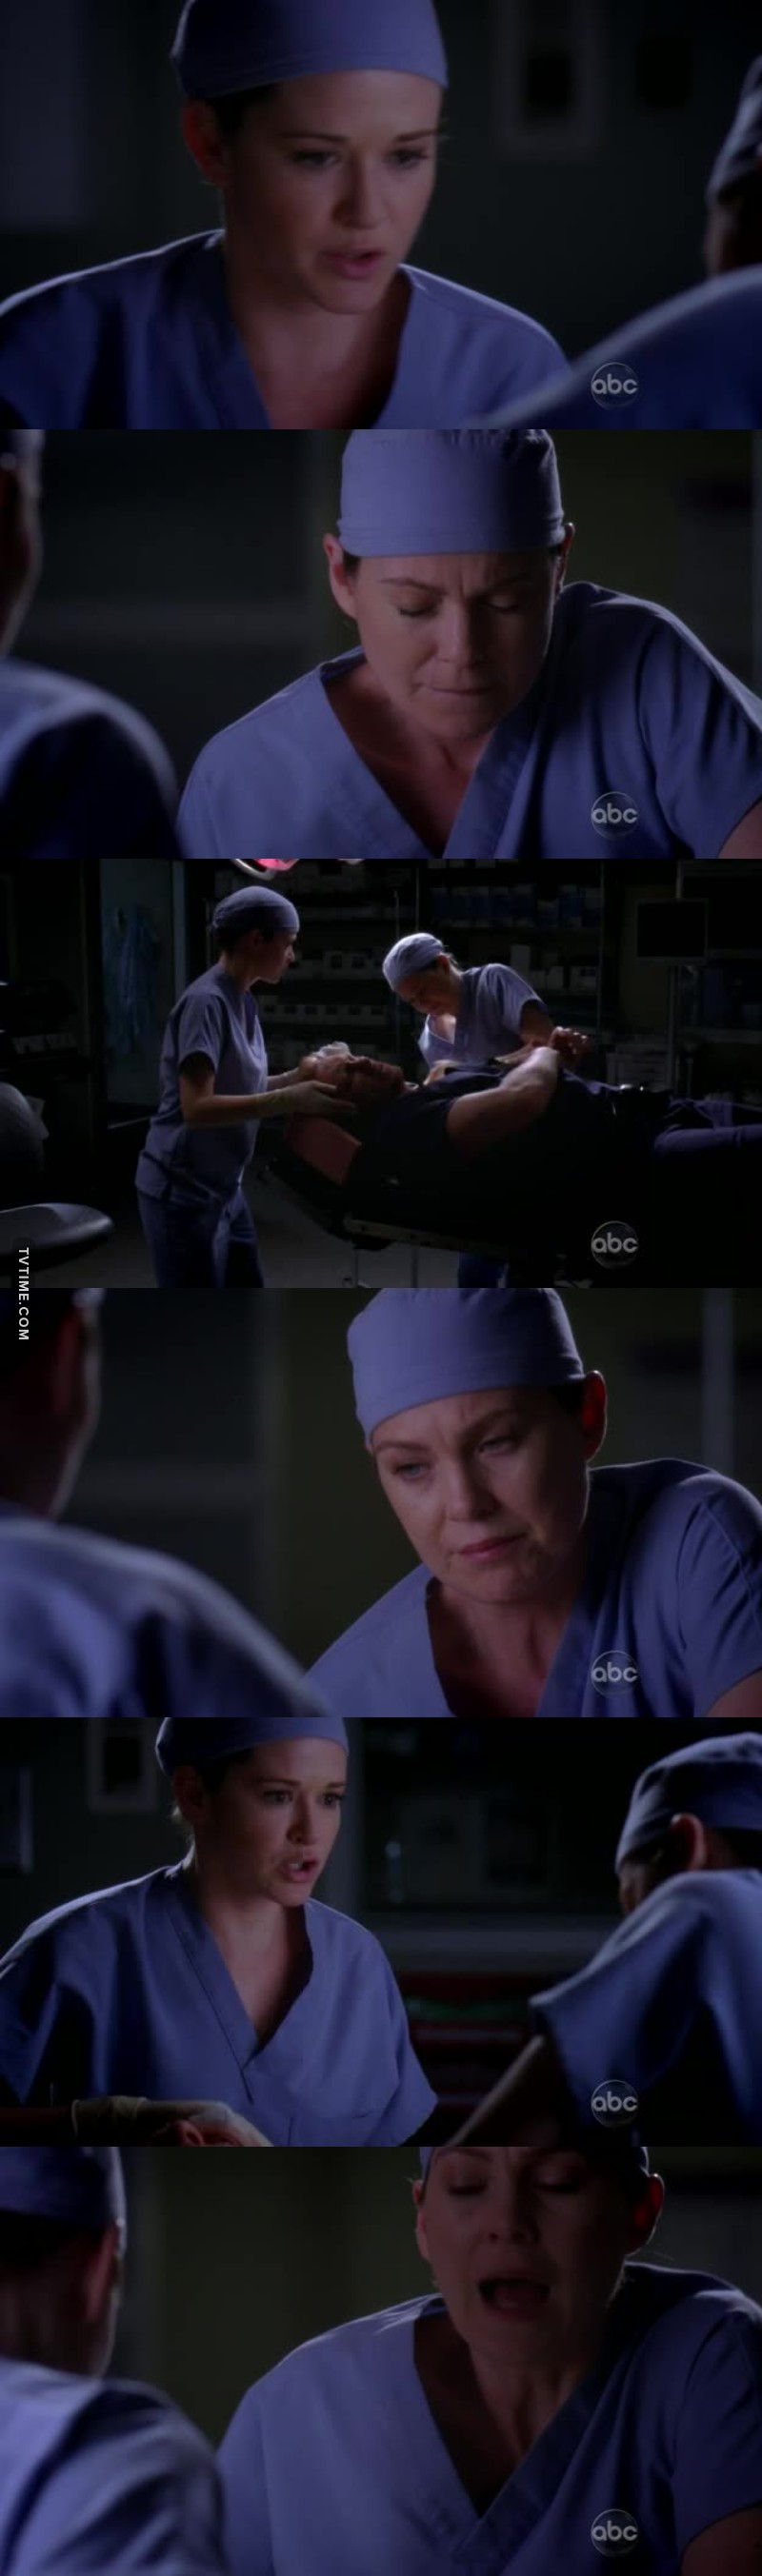 "april -""have you been shot? cause there is blood spreading along your legs"" meredith -""i'm having miscarriage"" me 😭😭😭😭😭😭"